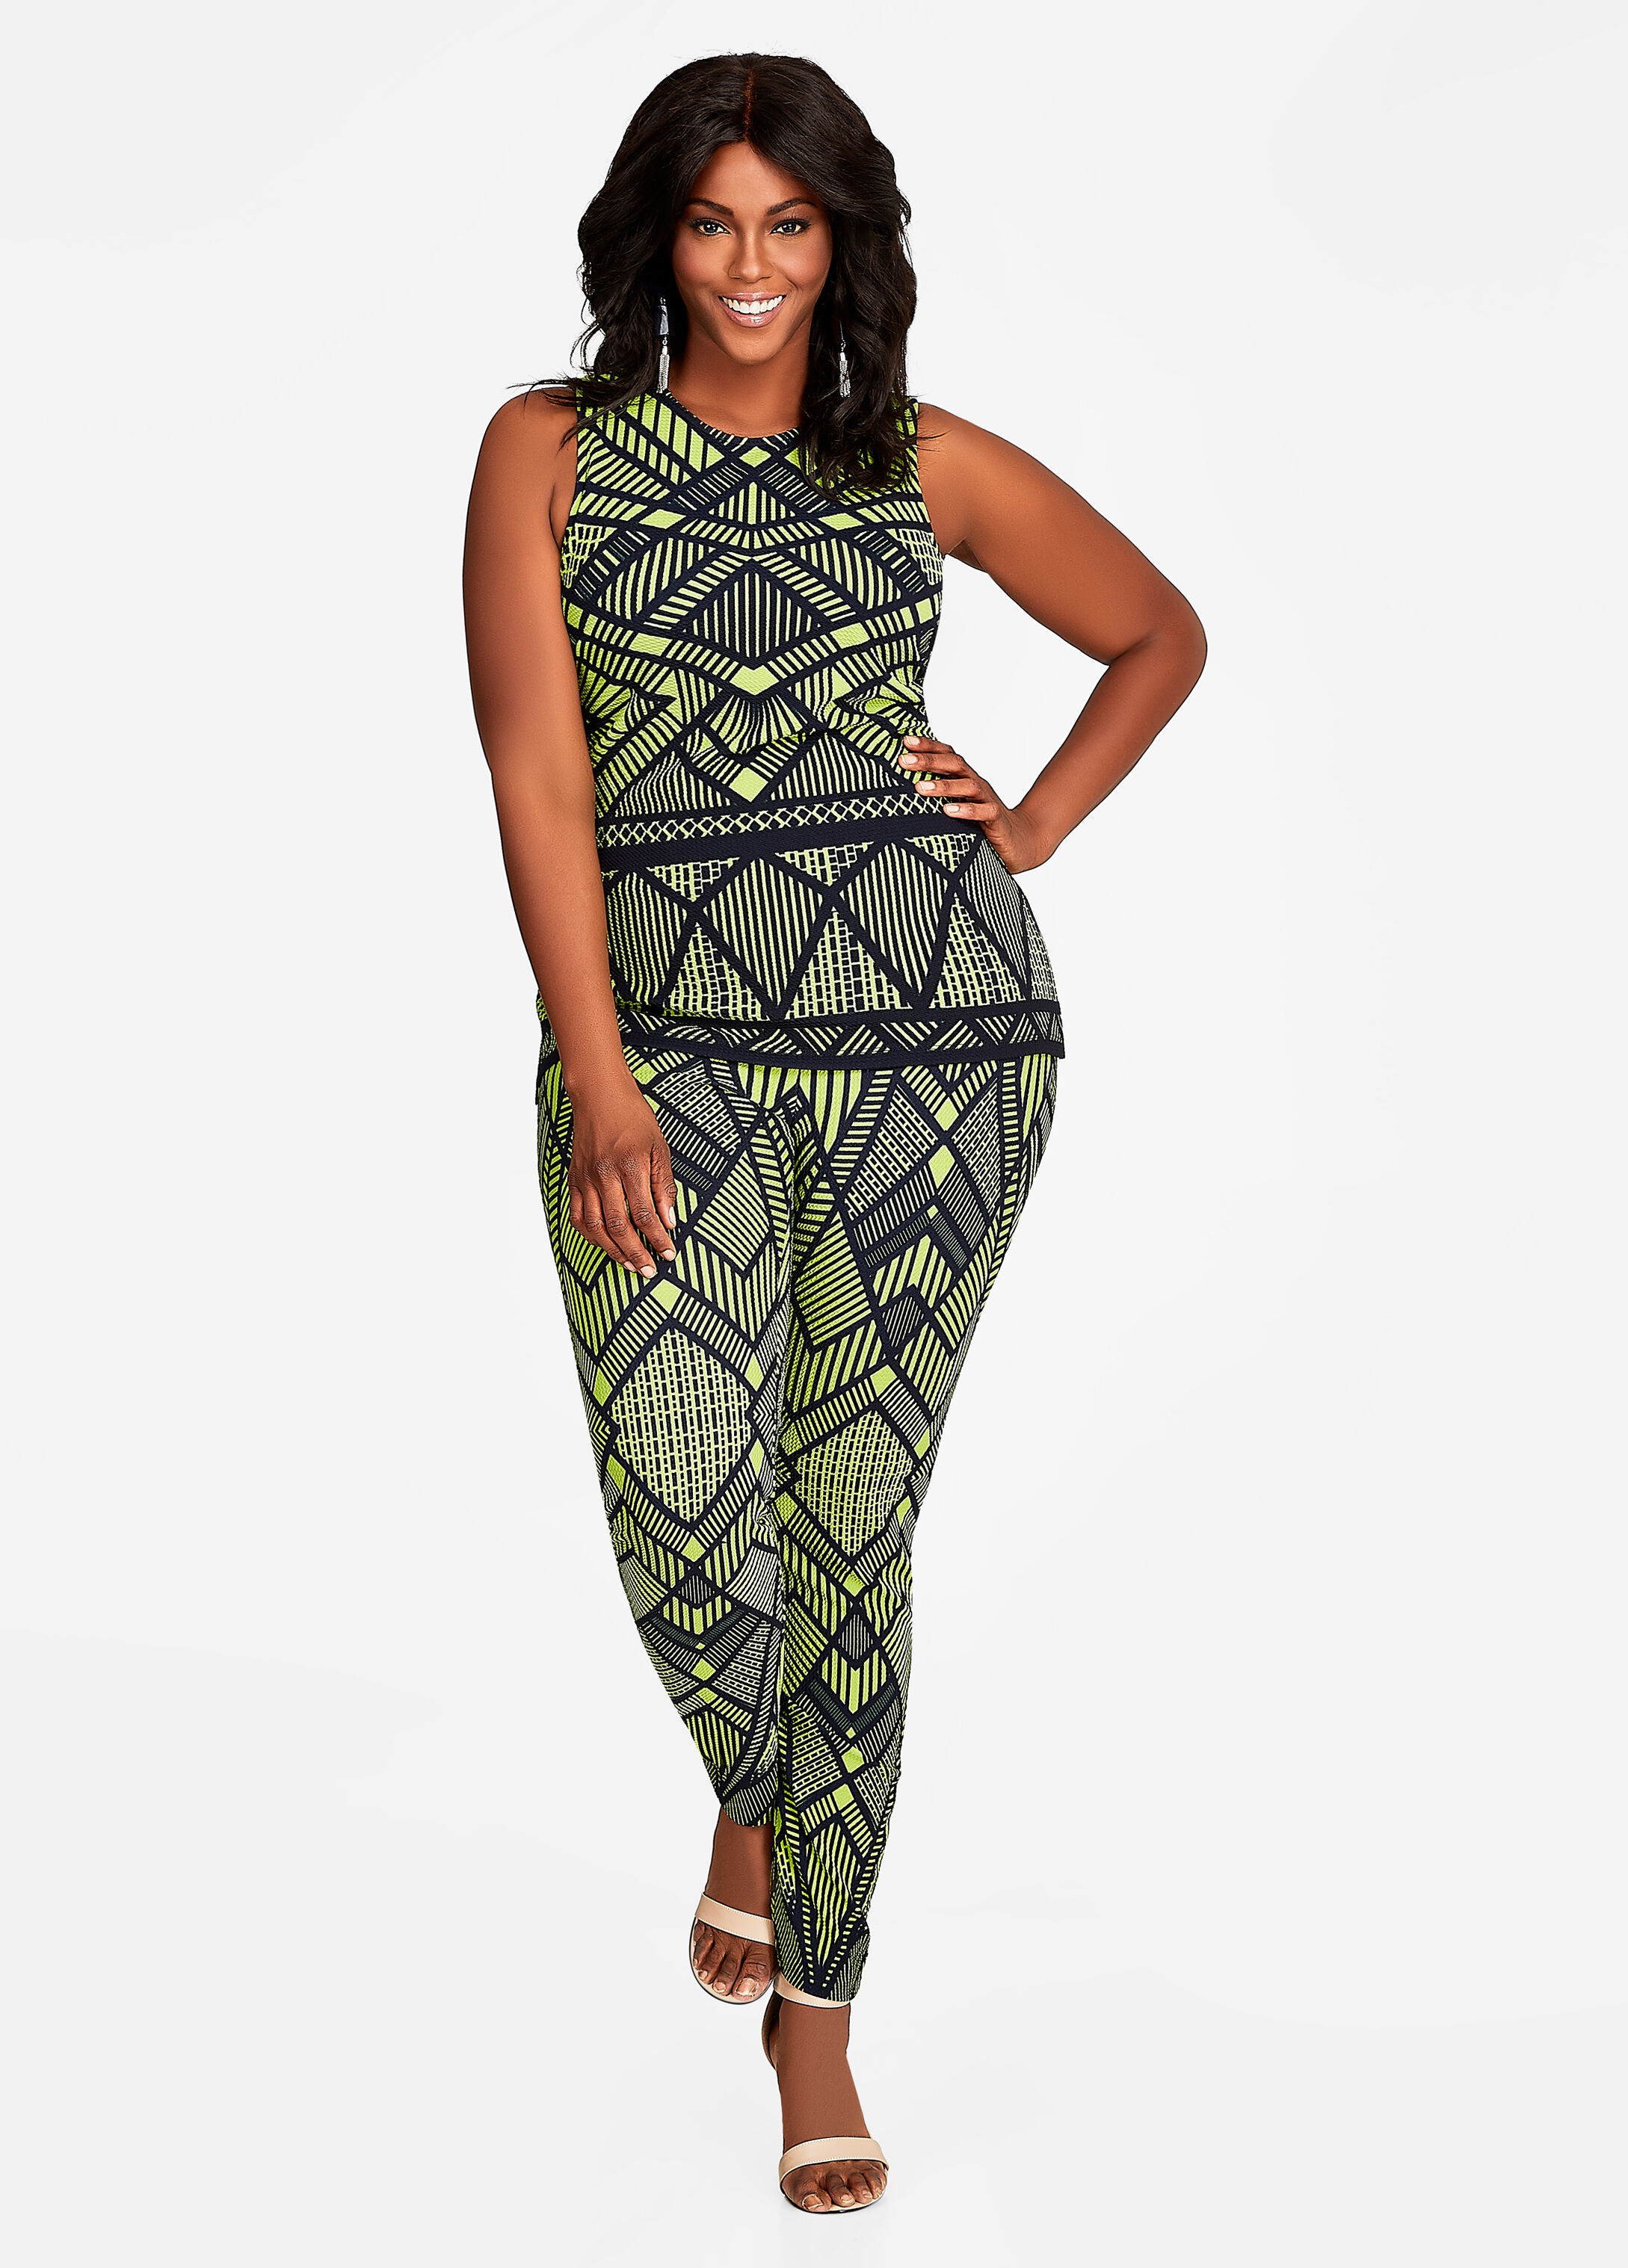 Plus Size Outfits - Geo Print Peplum Top and Pant Set